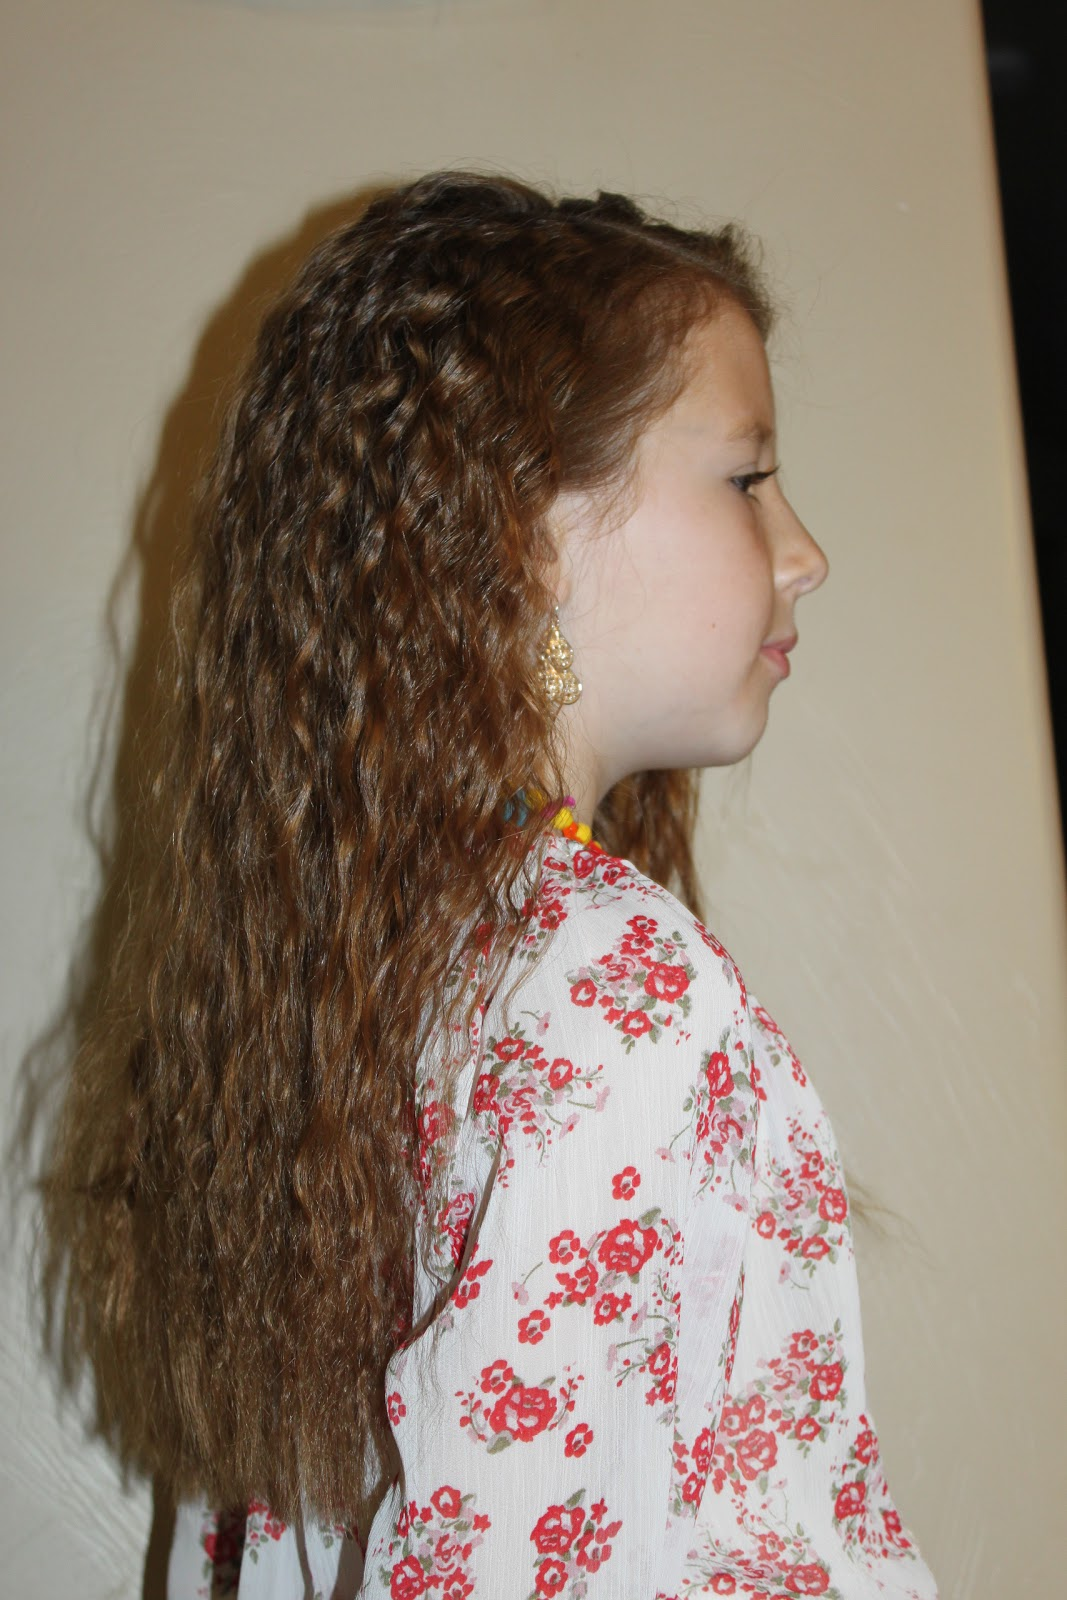 Hairstyles for Girls.. The Wright Hair: Crimped Hair